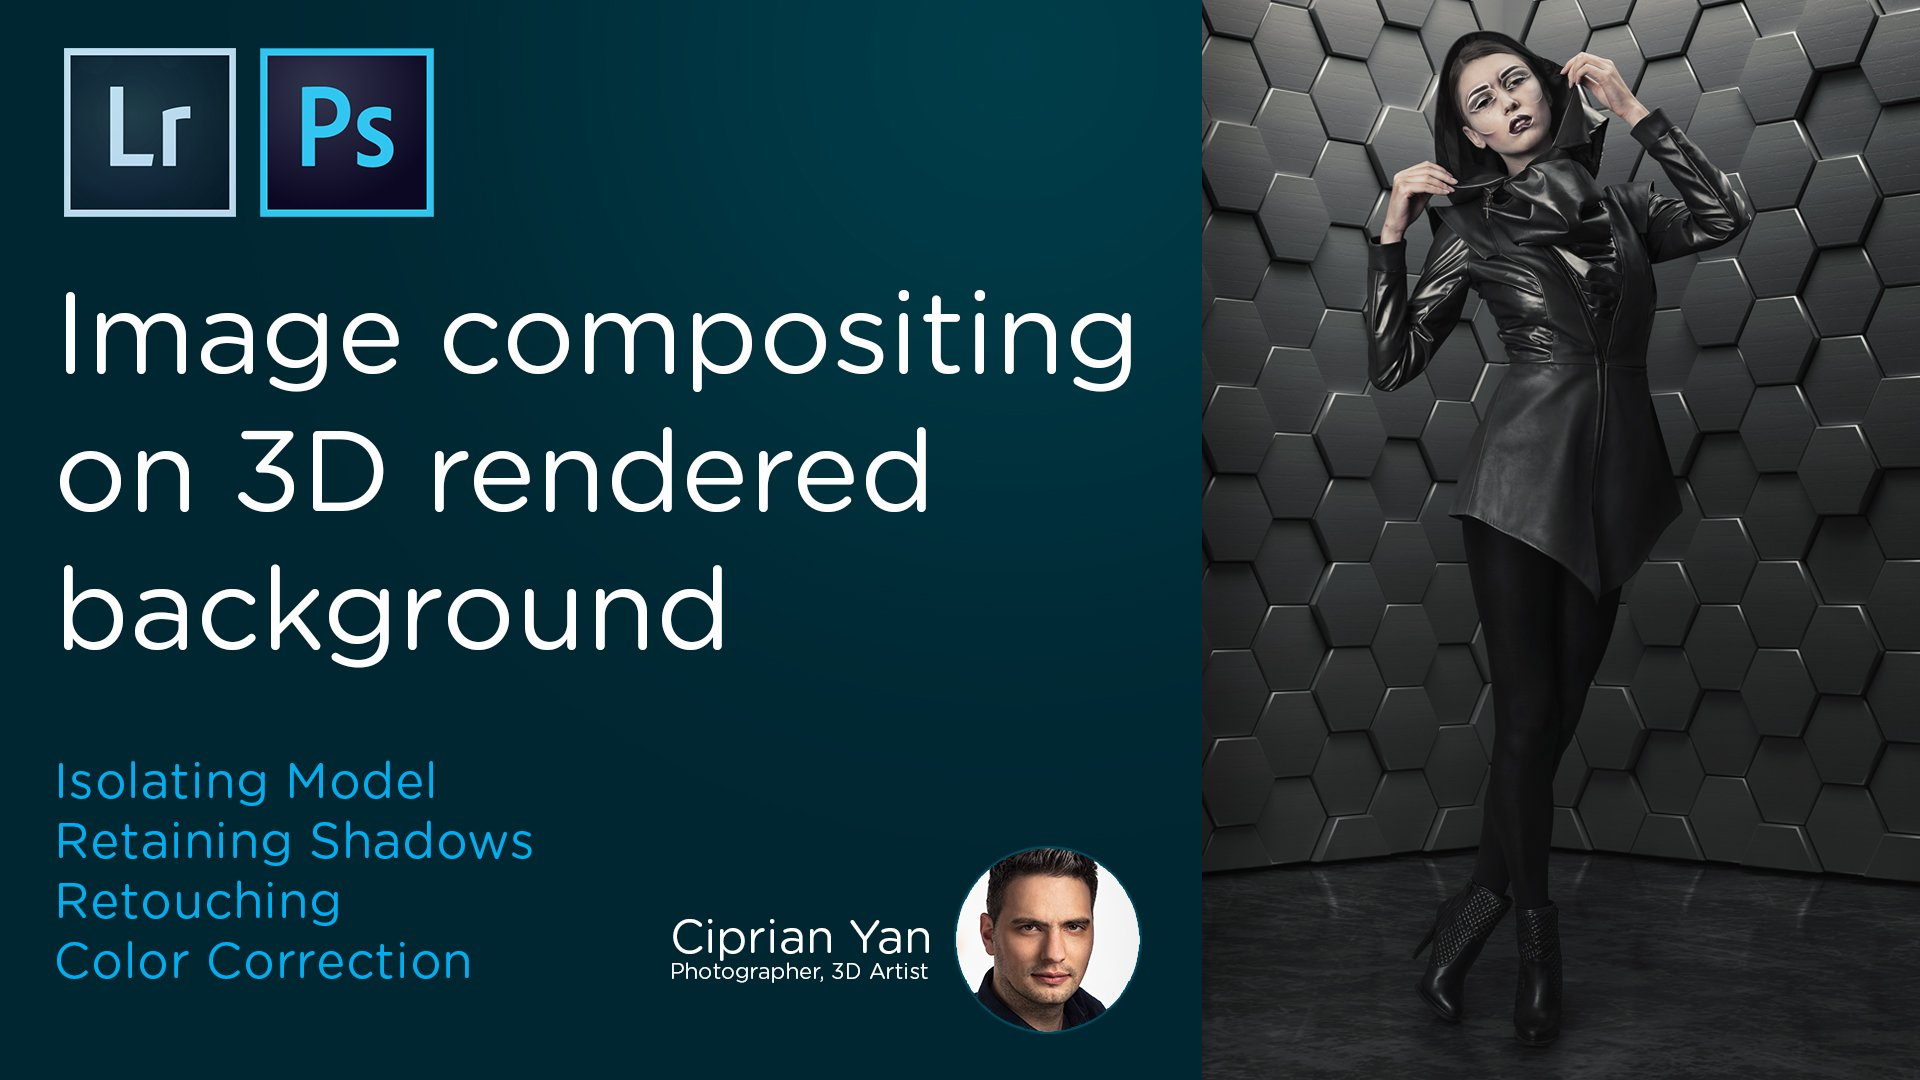 Image compositing on 3D rendered background | Ciprian Yan | Skillshare